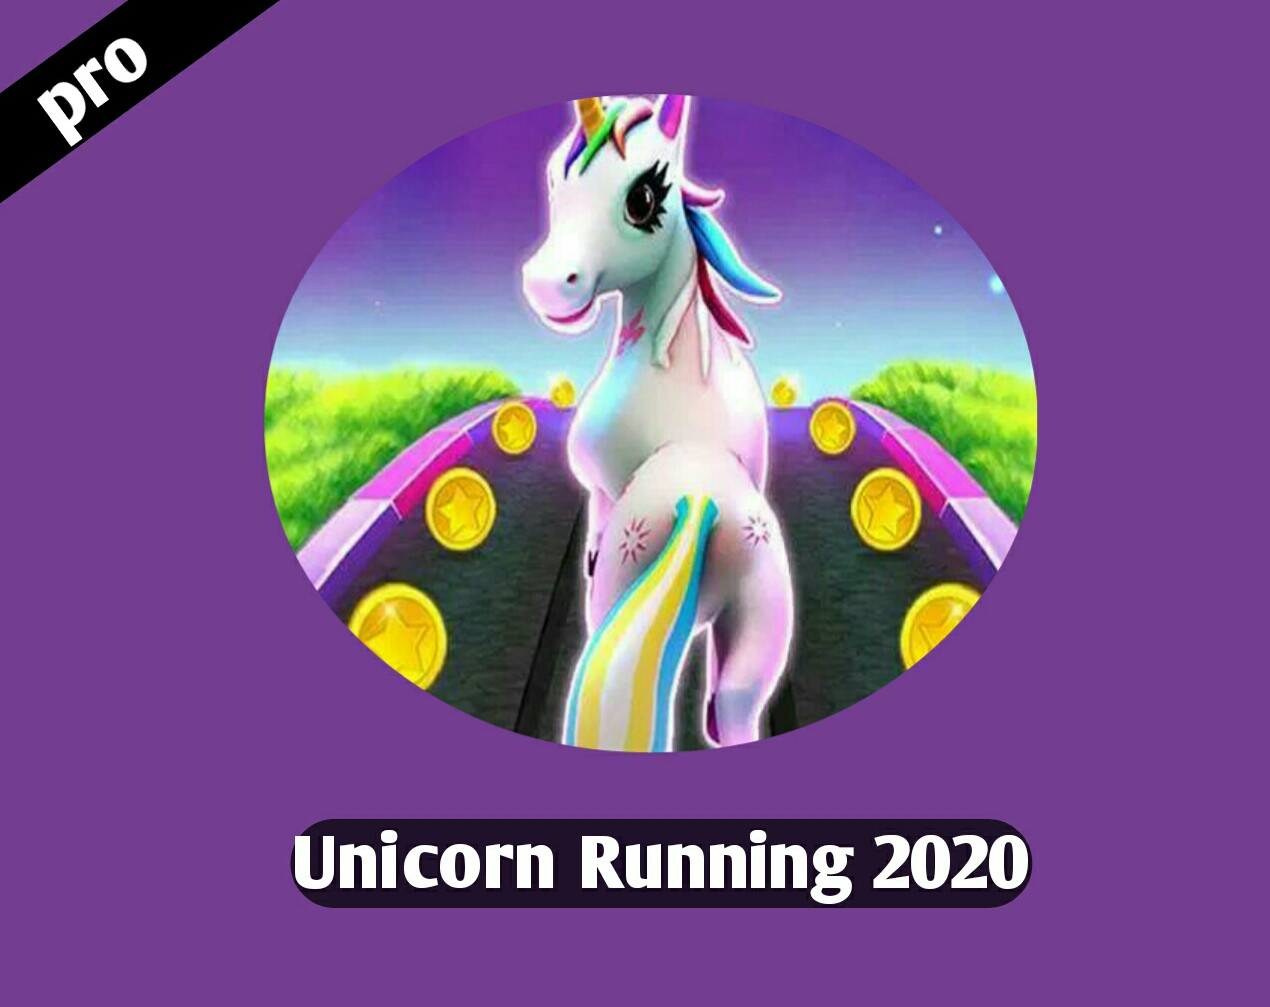 Unicorn Runner 2020